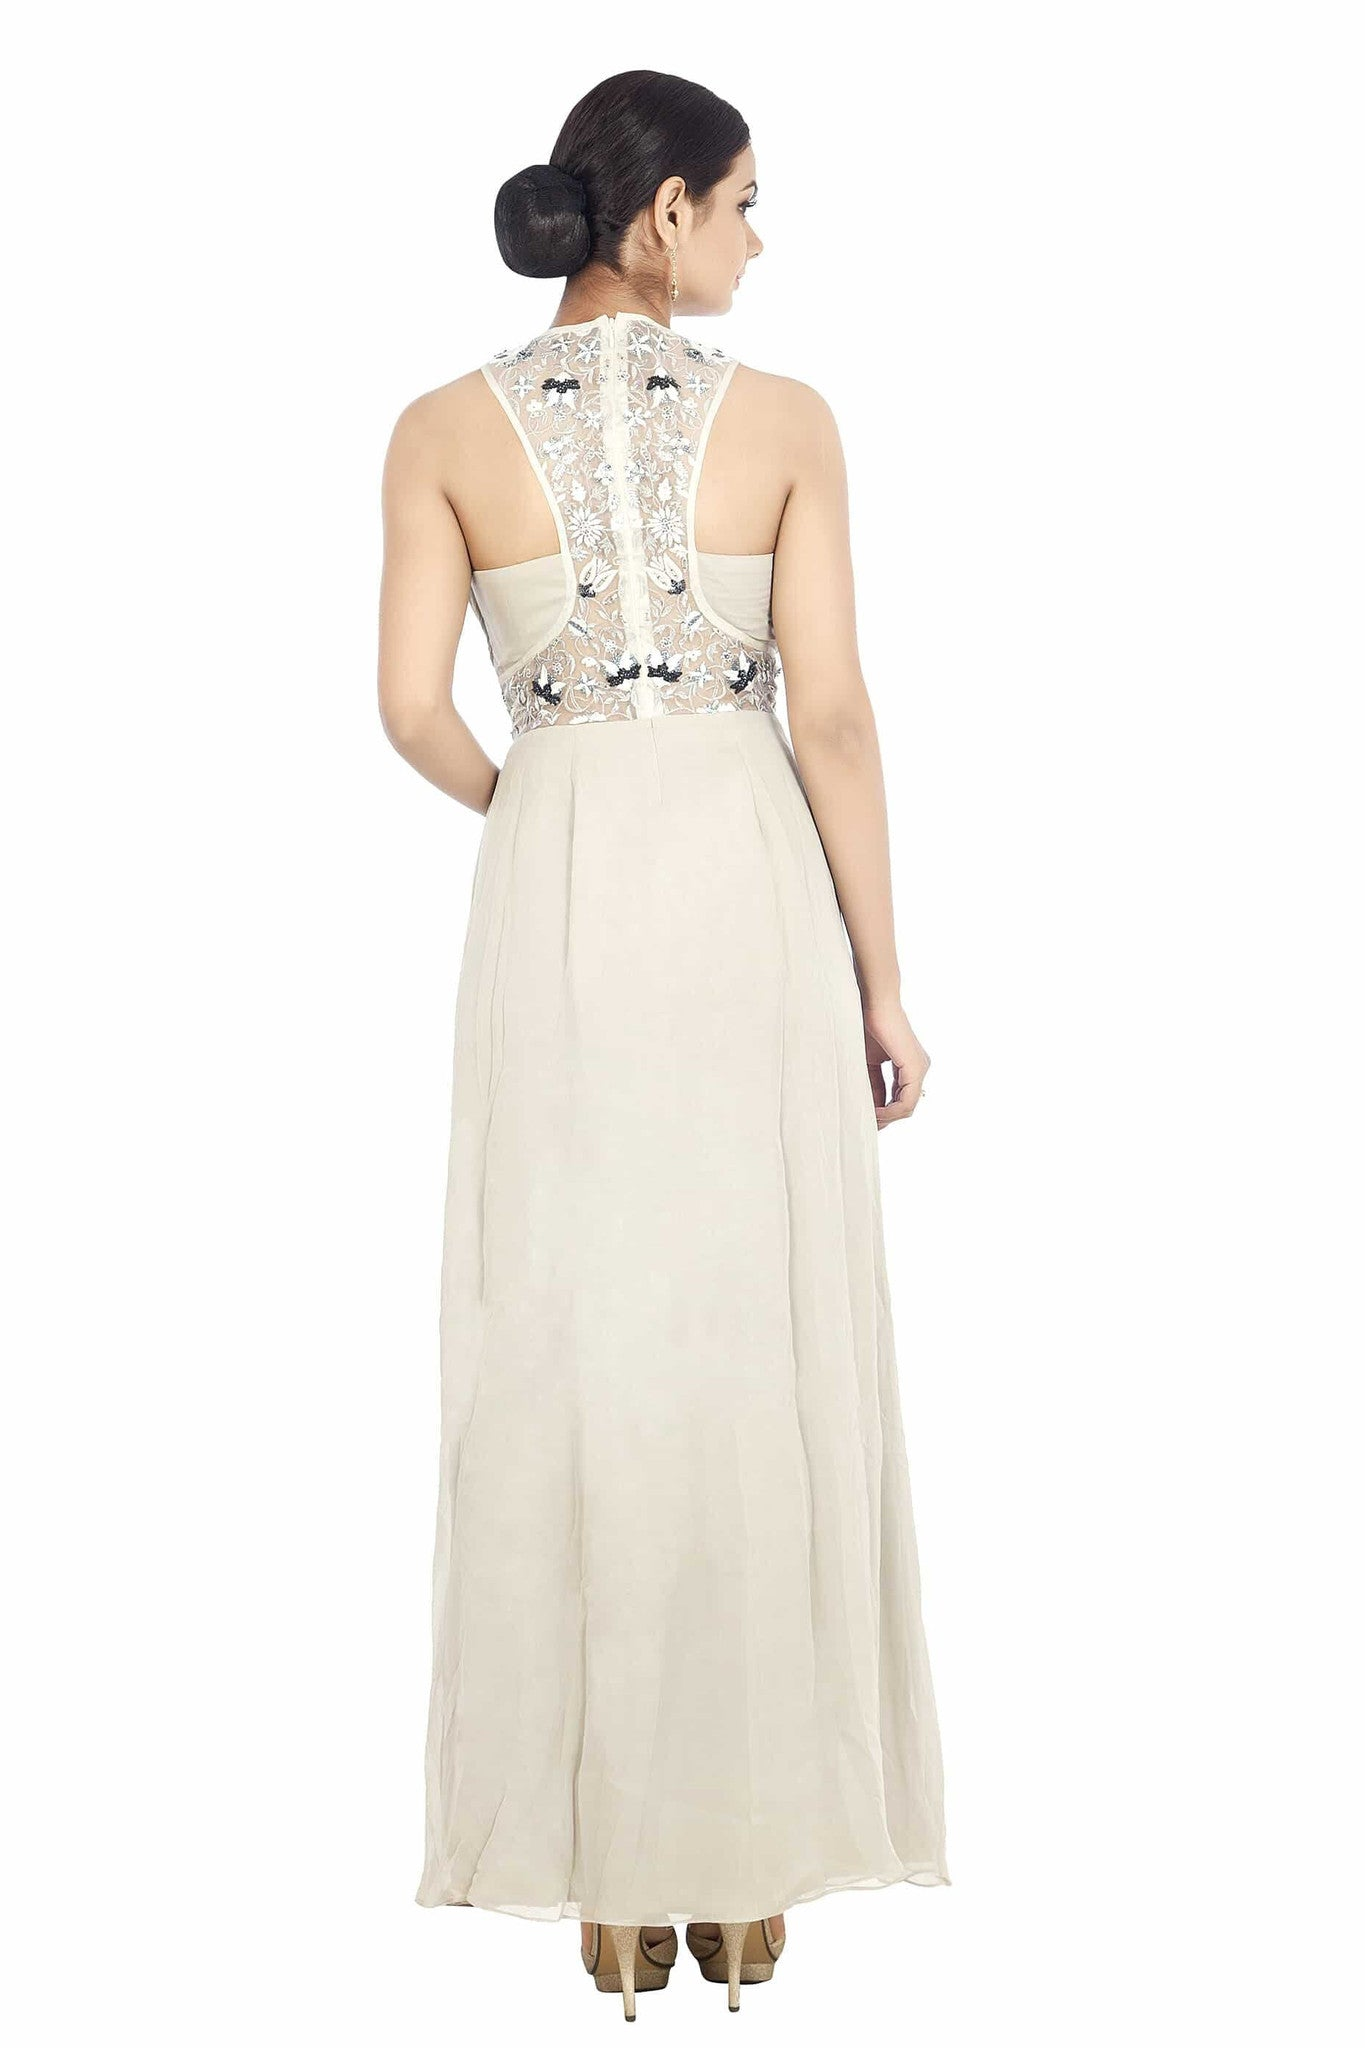 Miesu Light Grey Hand Embroidered with Embellished Sweep Neck Gown ...